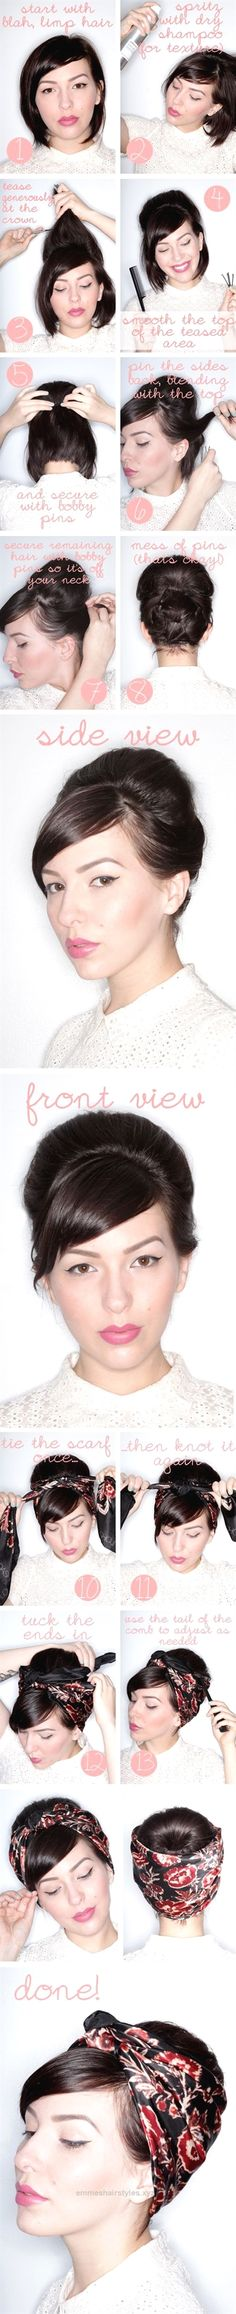 Beautiful Hair Tutorials For Short Hair The post Hair Tutorials For Short Hair… appeared first on Emme's Hairstyles .